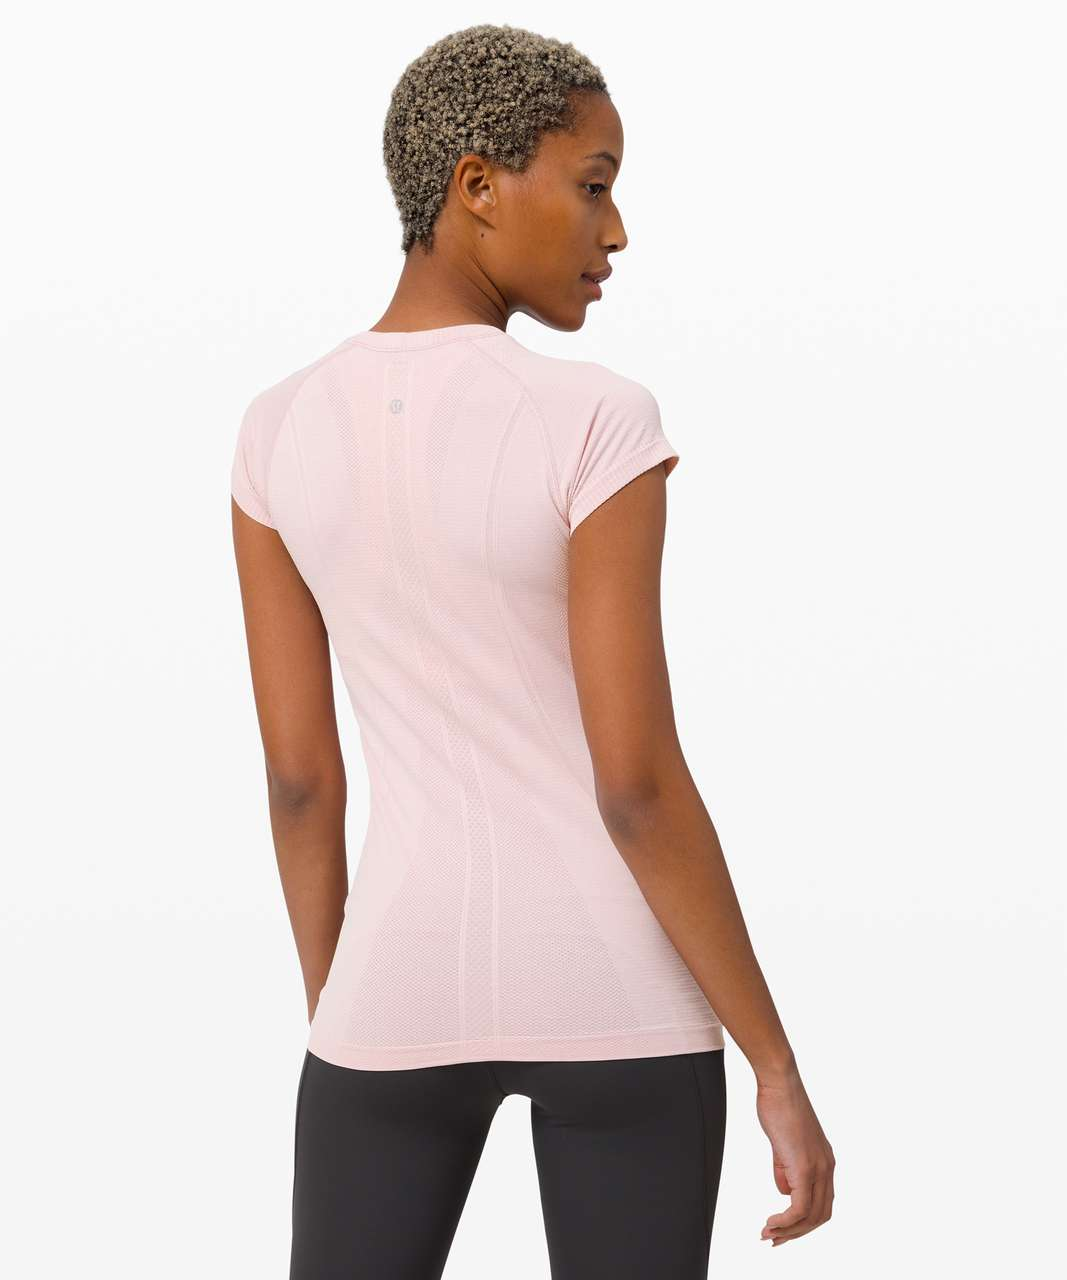 Lululemon Swiftly Tech Short Sleeve Crew - Porcelain Pink / White